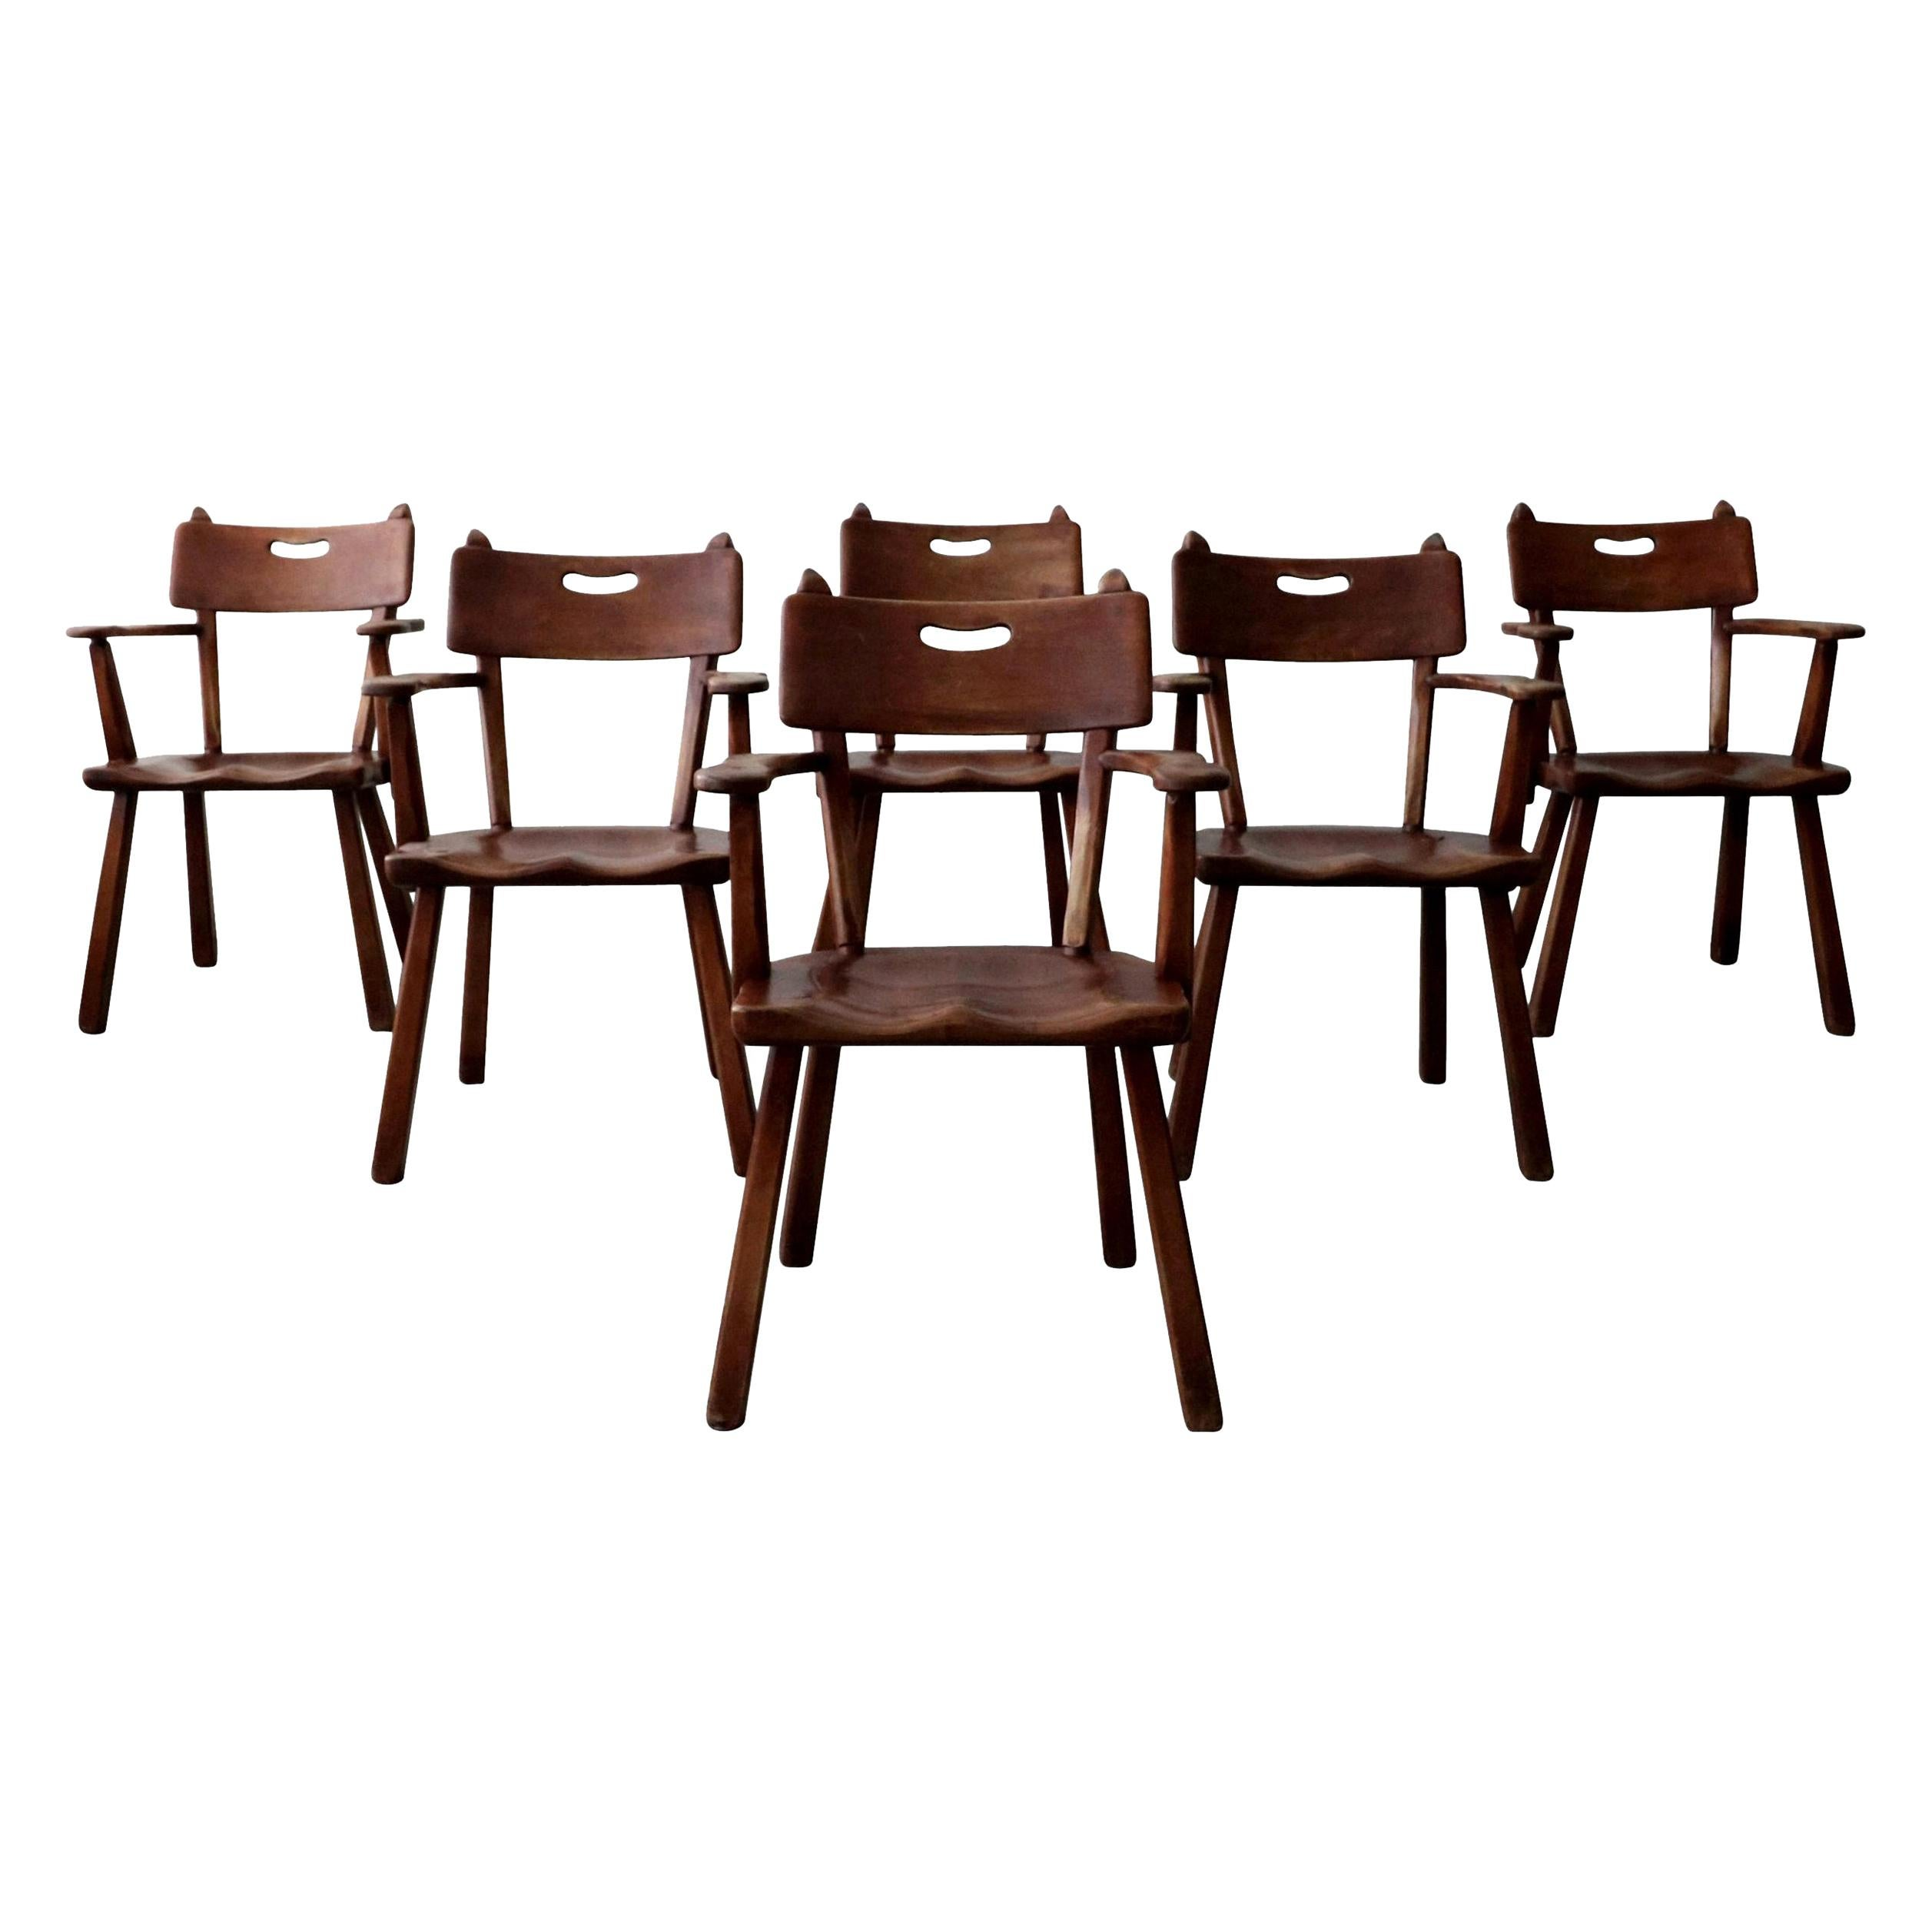 Set of 6 California Studio Craft Primitive Wood Dining Chairs